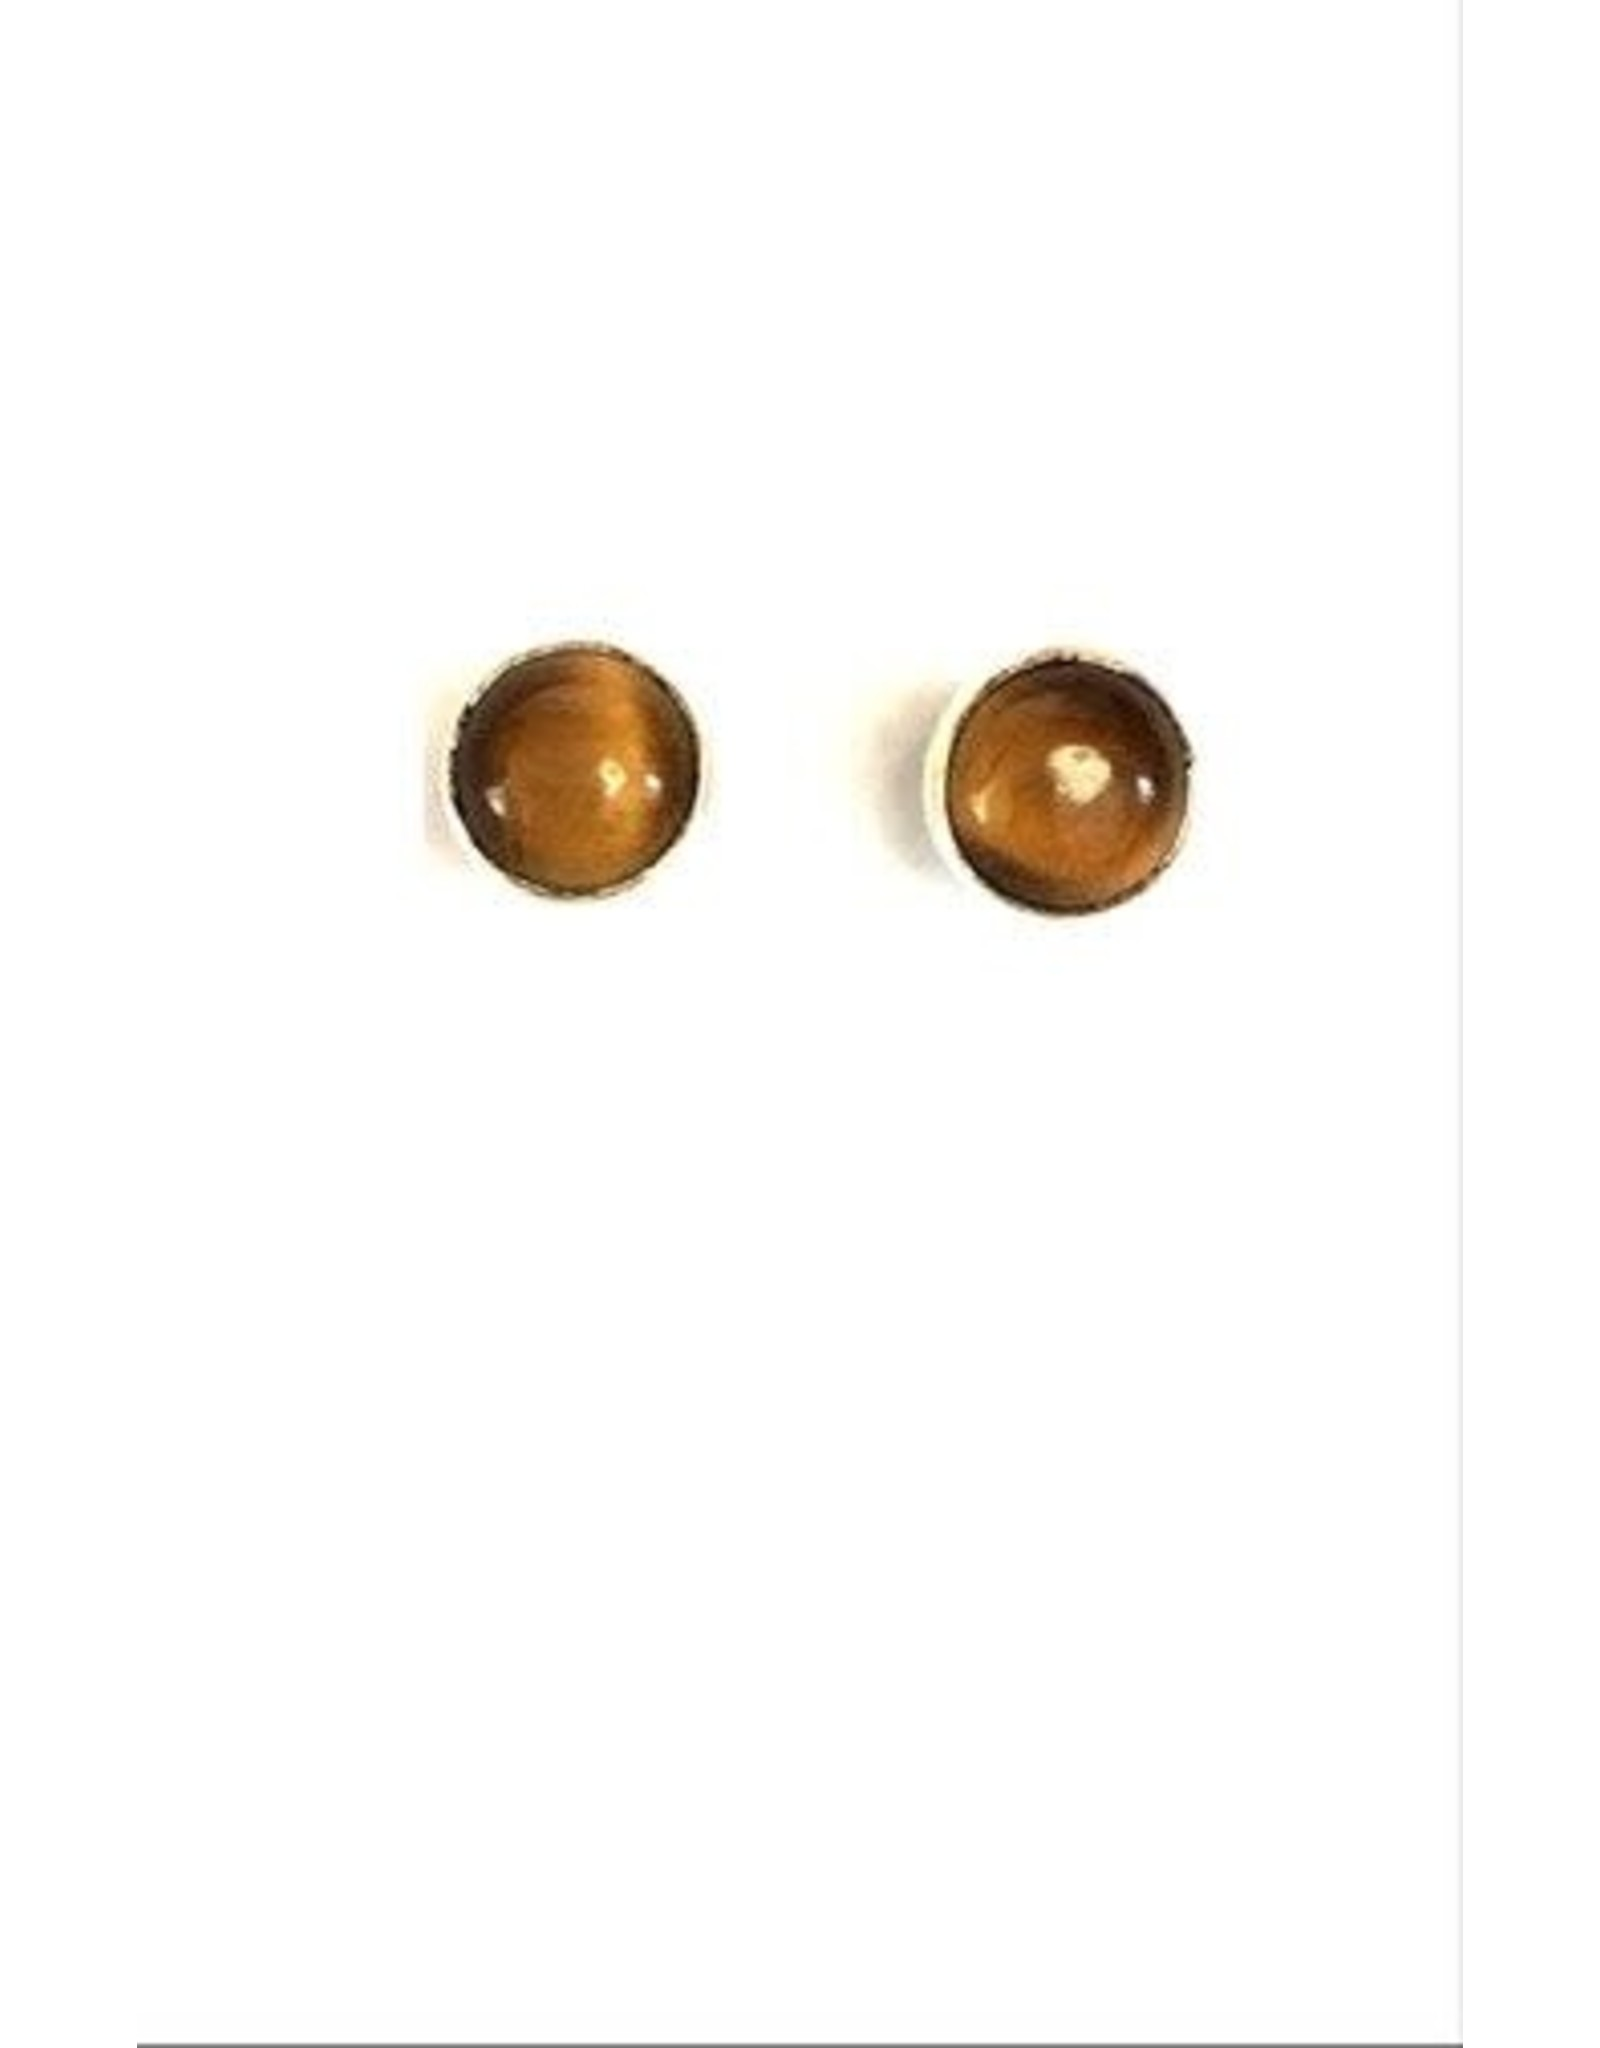 Earrings w/Small Stone in Bezel Setting